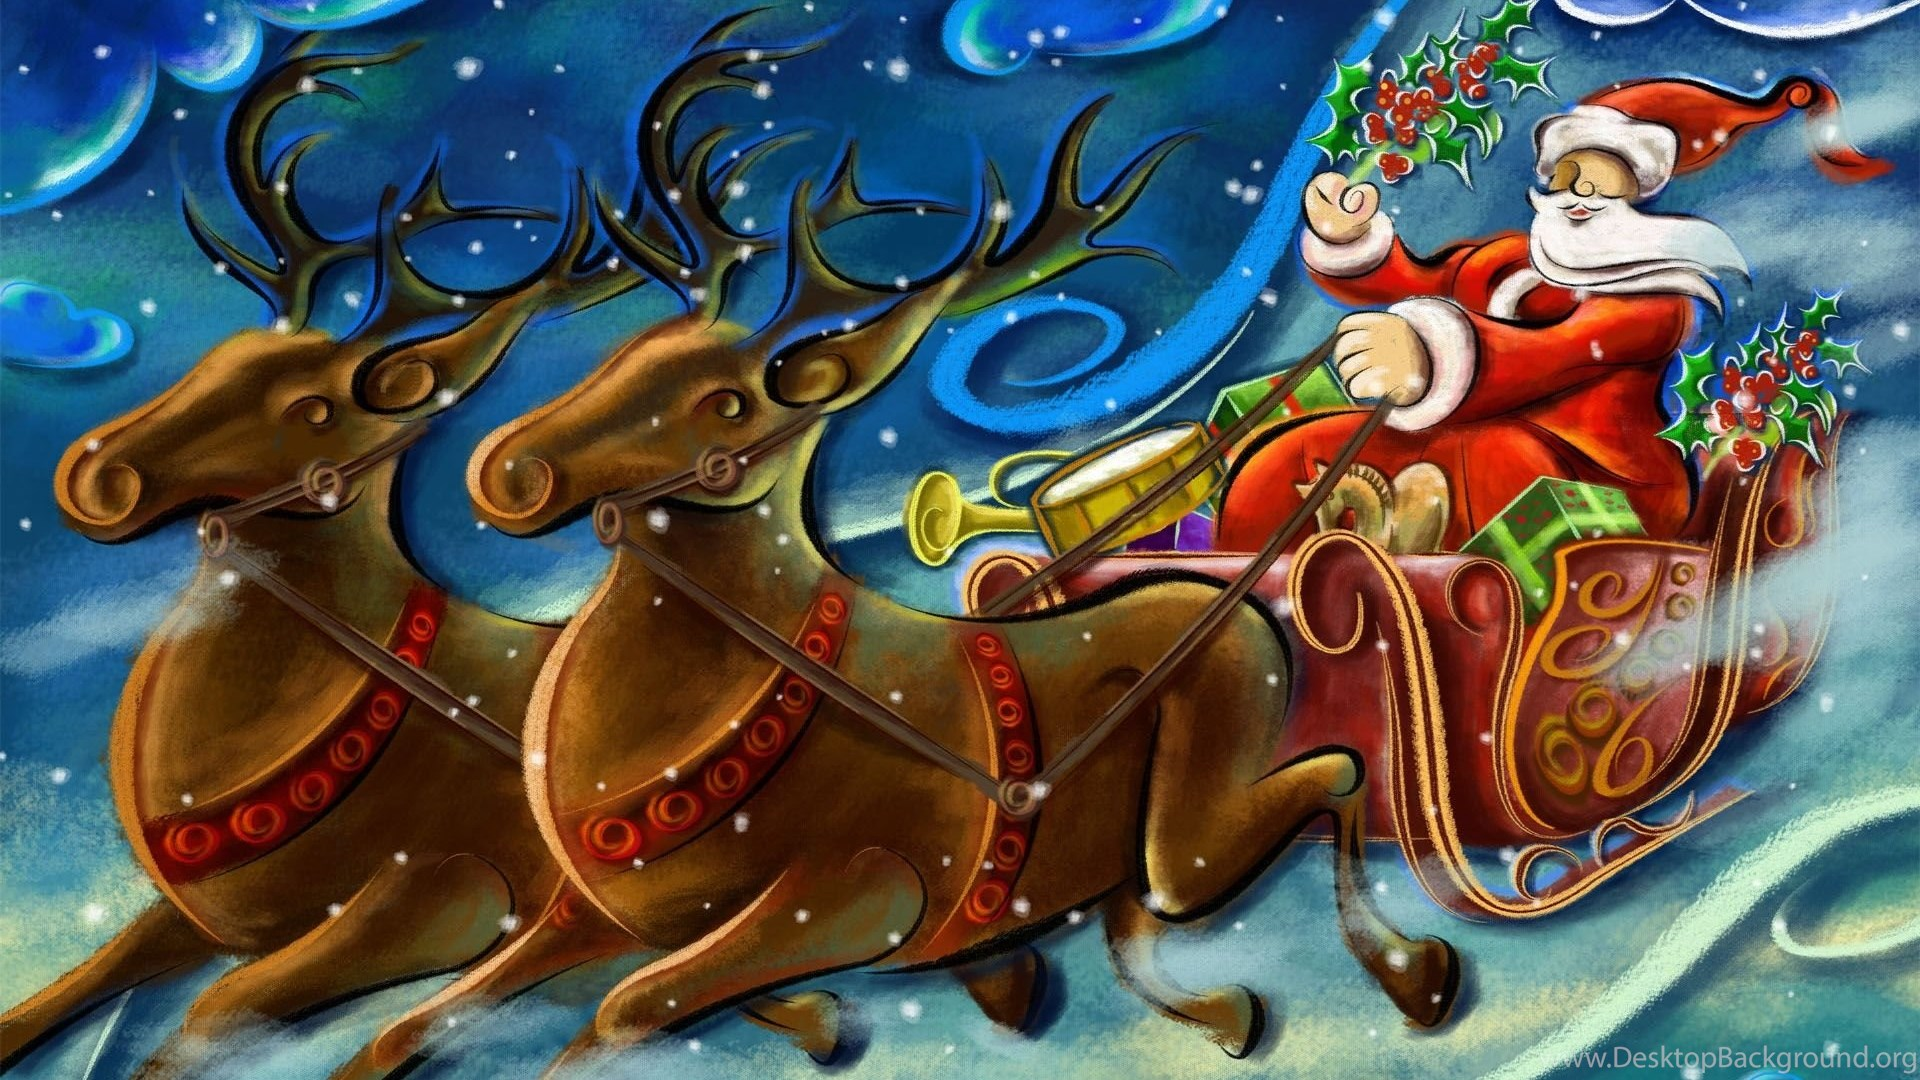 Cartoon Pictures Of Santa Claus And His Reindeer